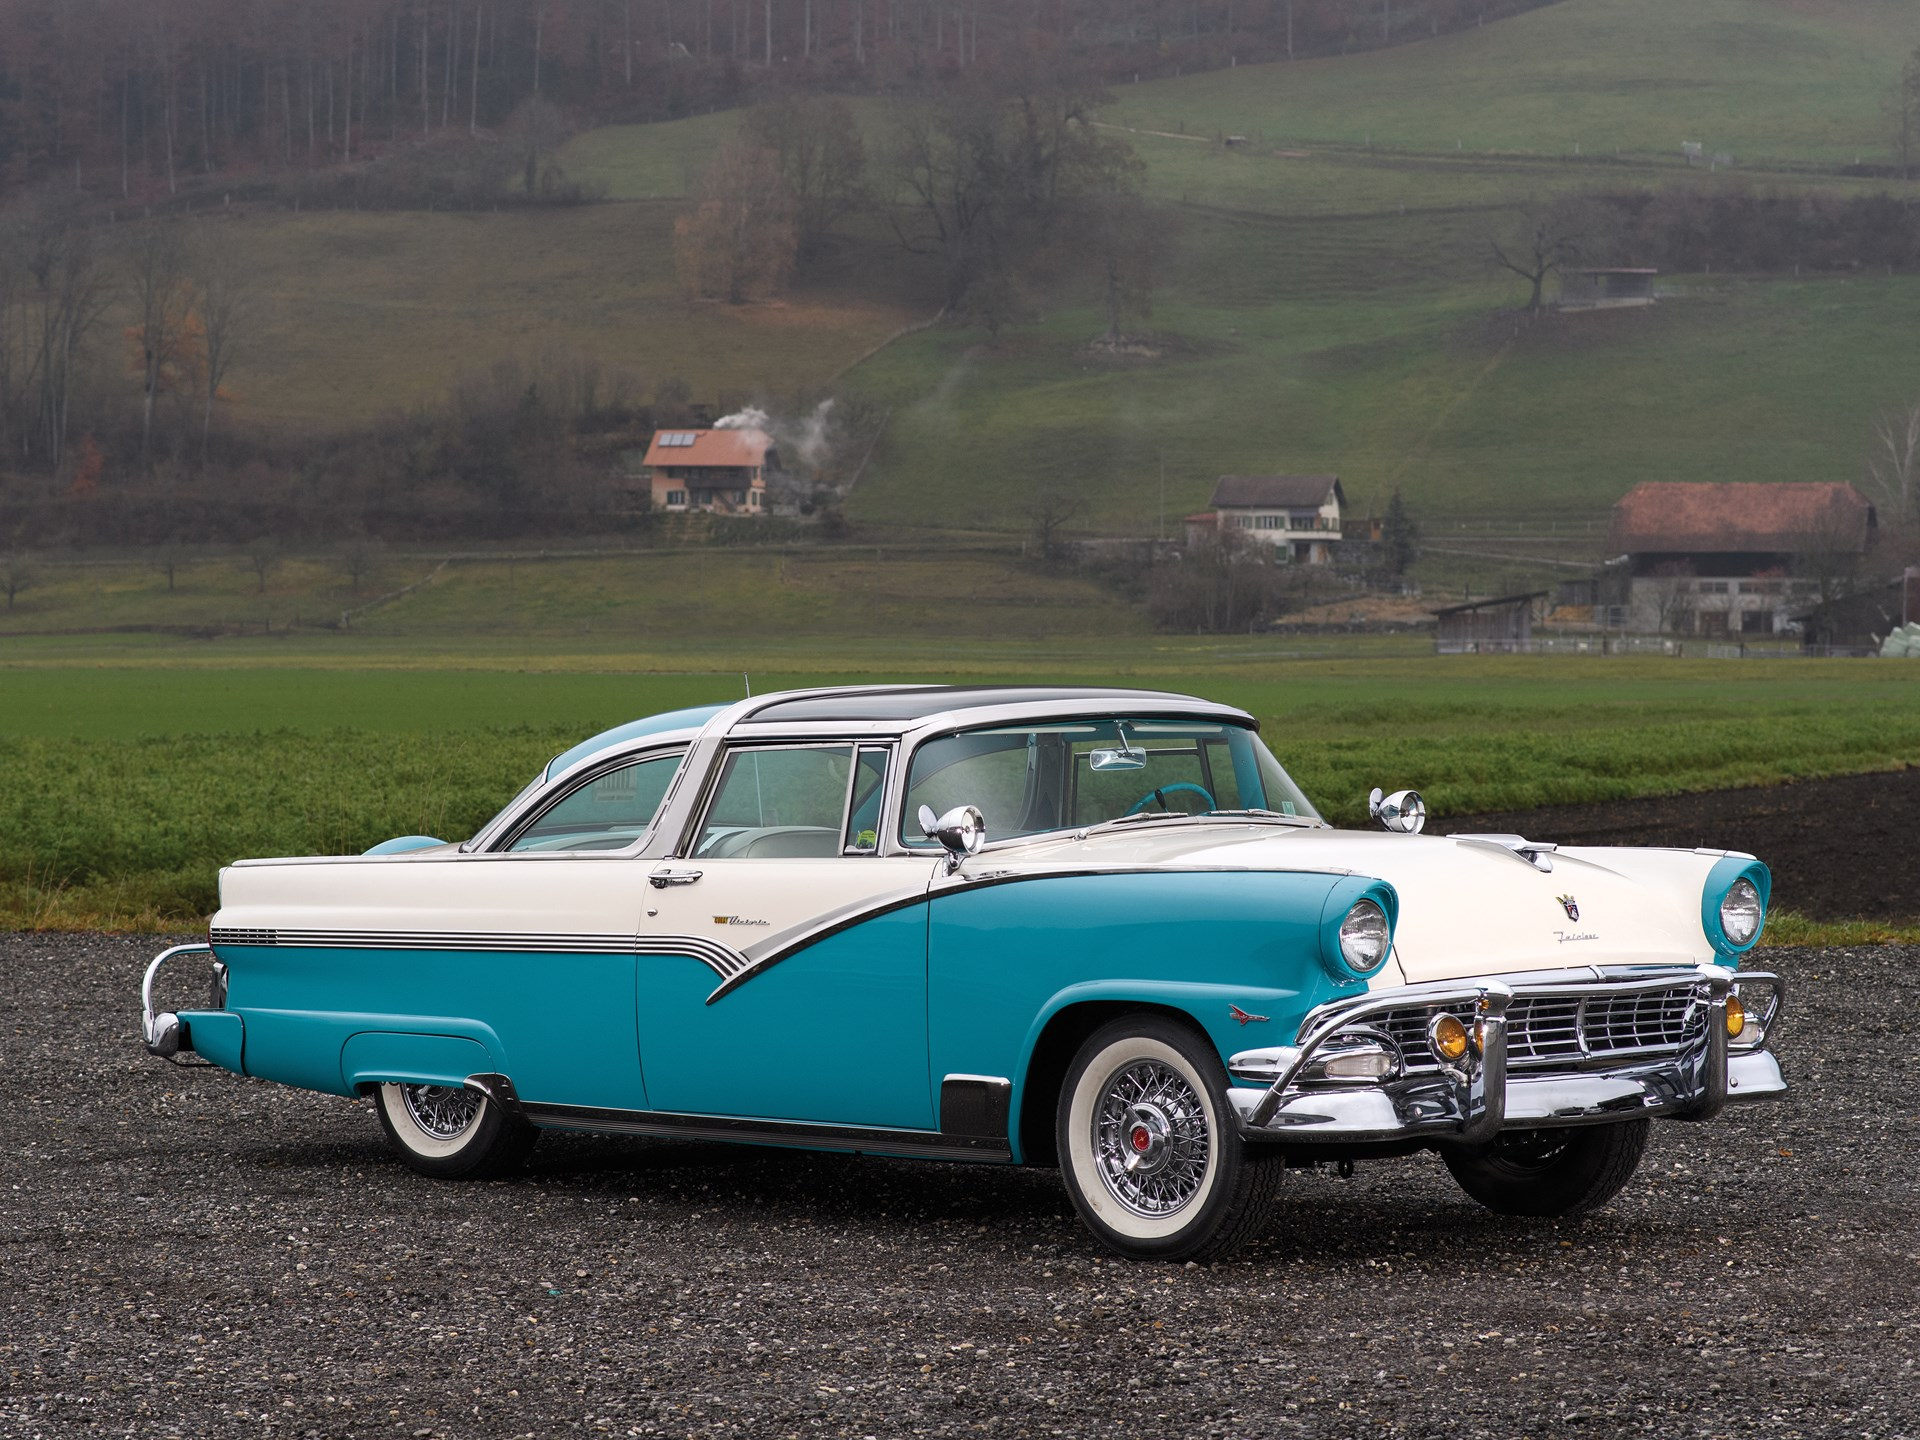 rm sotheby\u0027s 1956 ford fairlane crown victoria skyliner fort 1956 Ford Crown Victoria Skyliner 1956 ford fairlane crown victoria skyliner